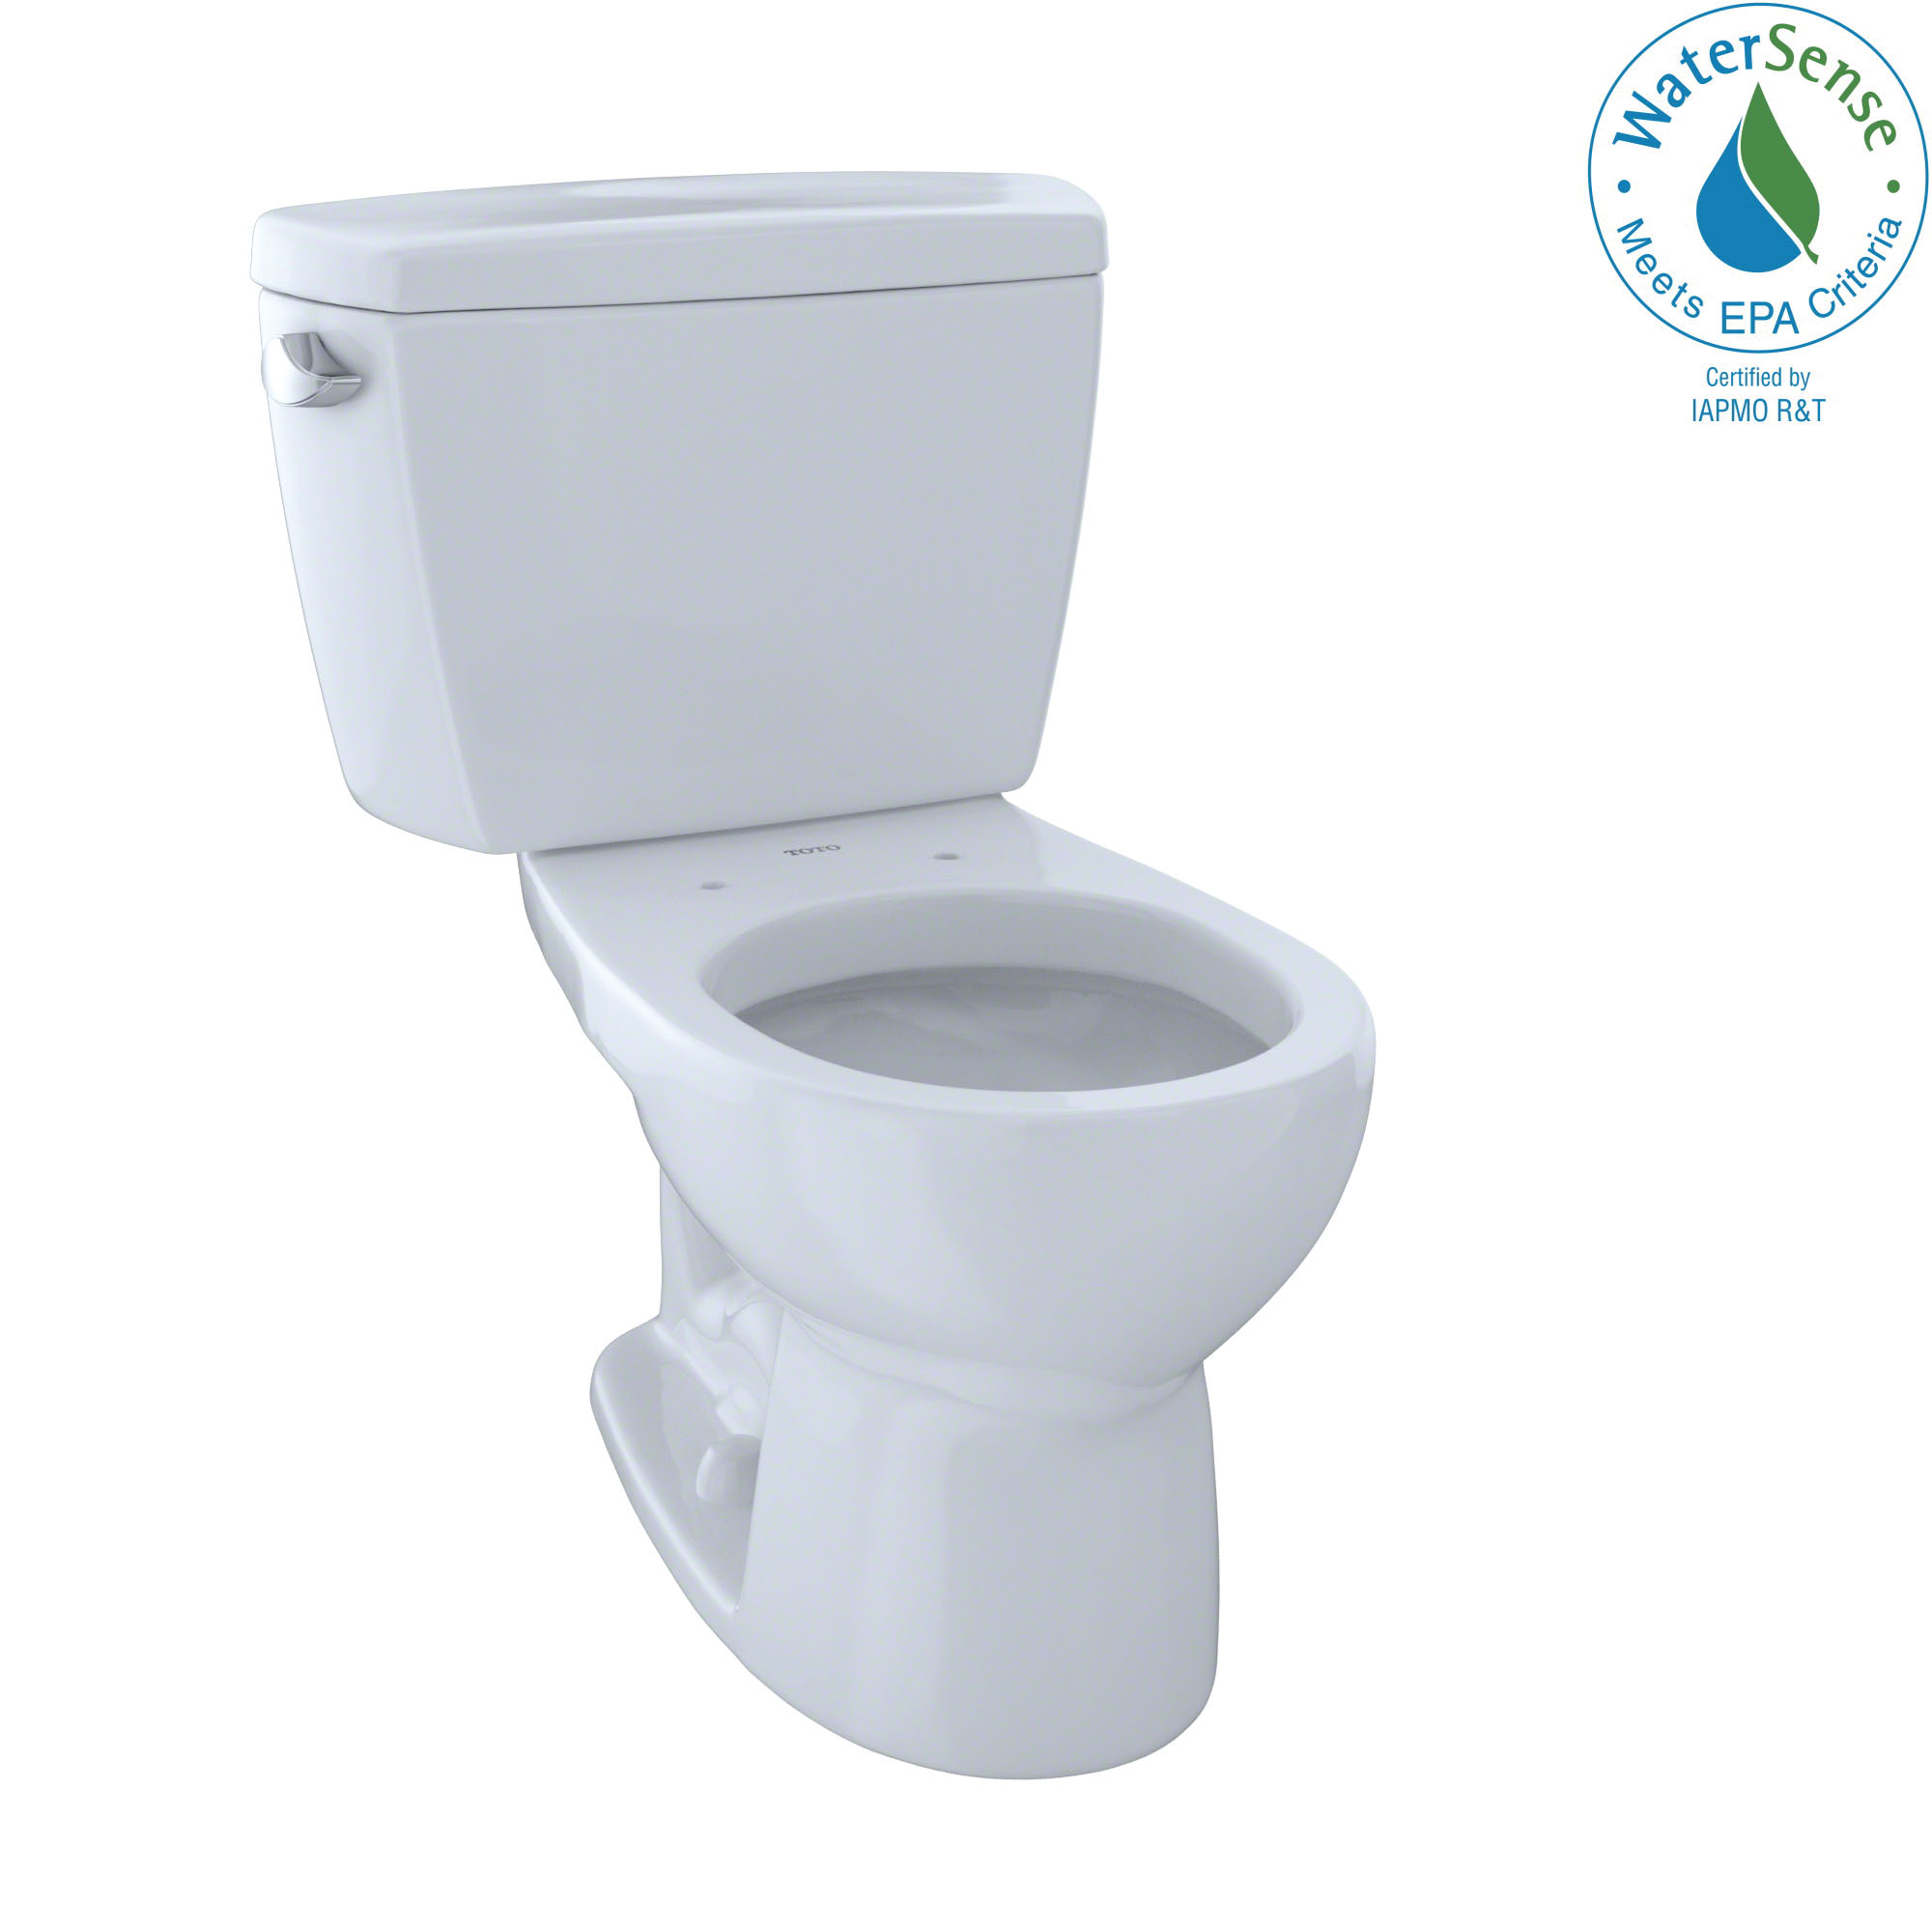 Toto® Eco Drake® CST743E#01 2-Piece Universal Height Close Coupled Toilet With Left-Hand Chrome Trip Lever, Round Front Bowl, 15-5/8 in H Rim, 12 in Rough-In, 1.28 gpf, Cotton White, Import